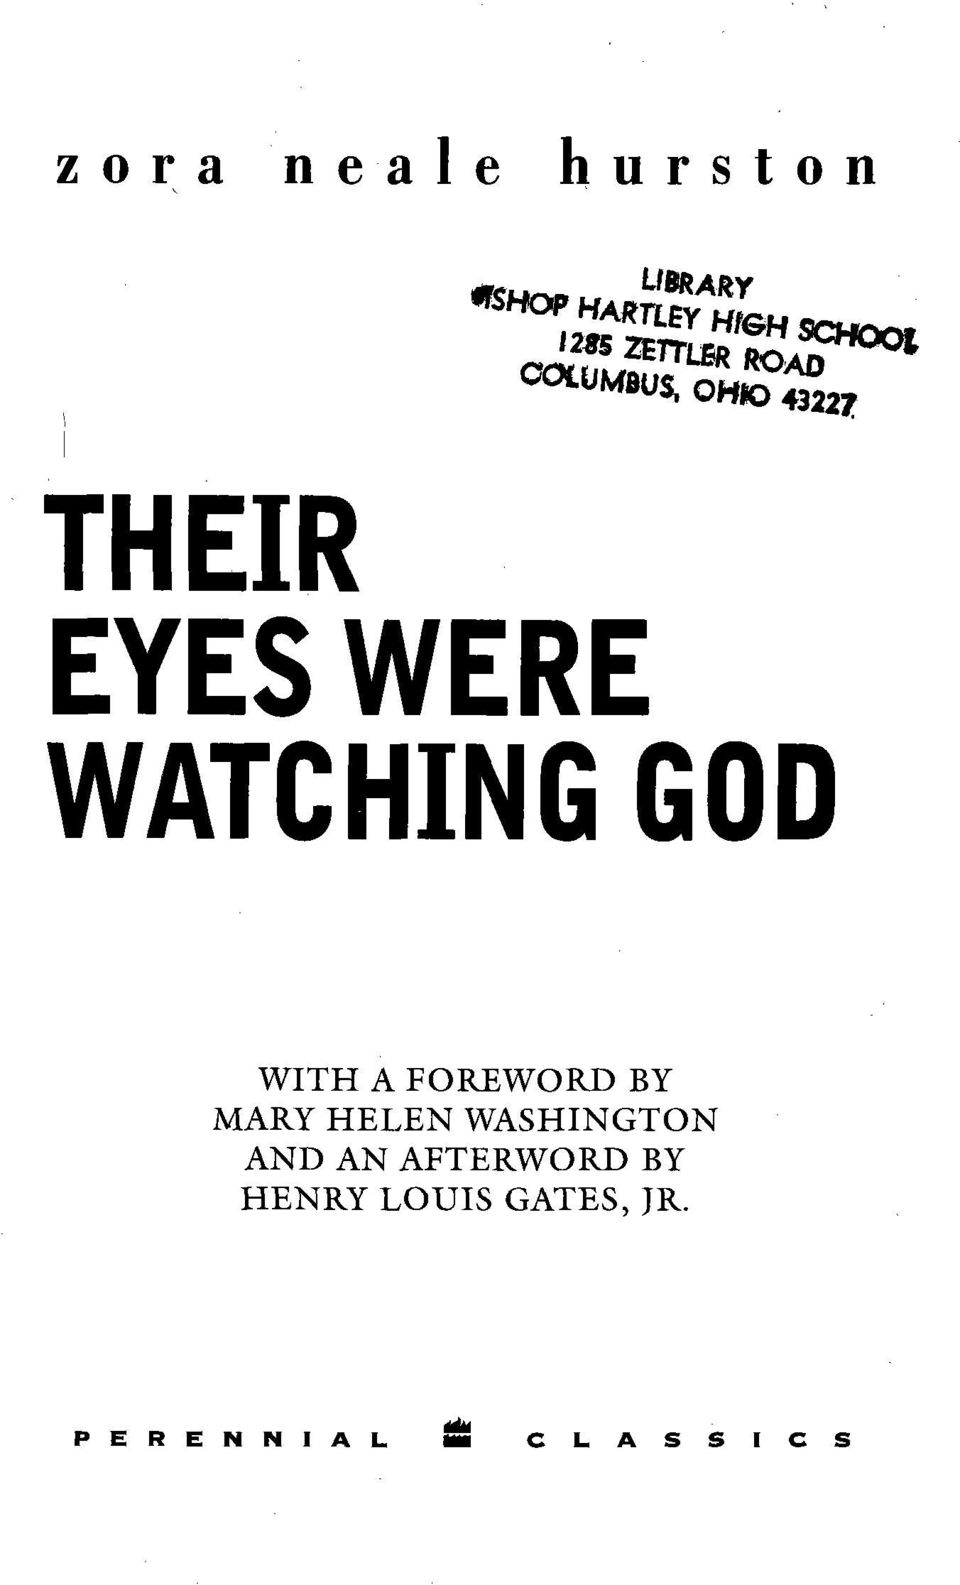 WATCHING GOD WITH A FOREWORD BY MARY HELEN WASHINGTON